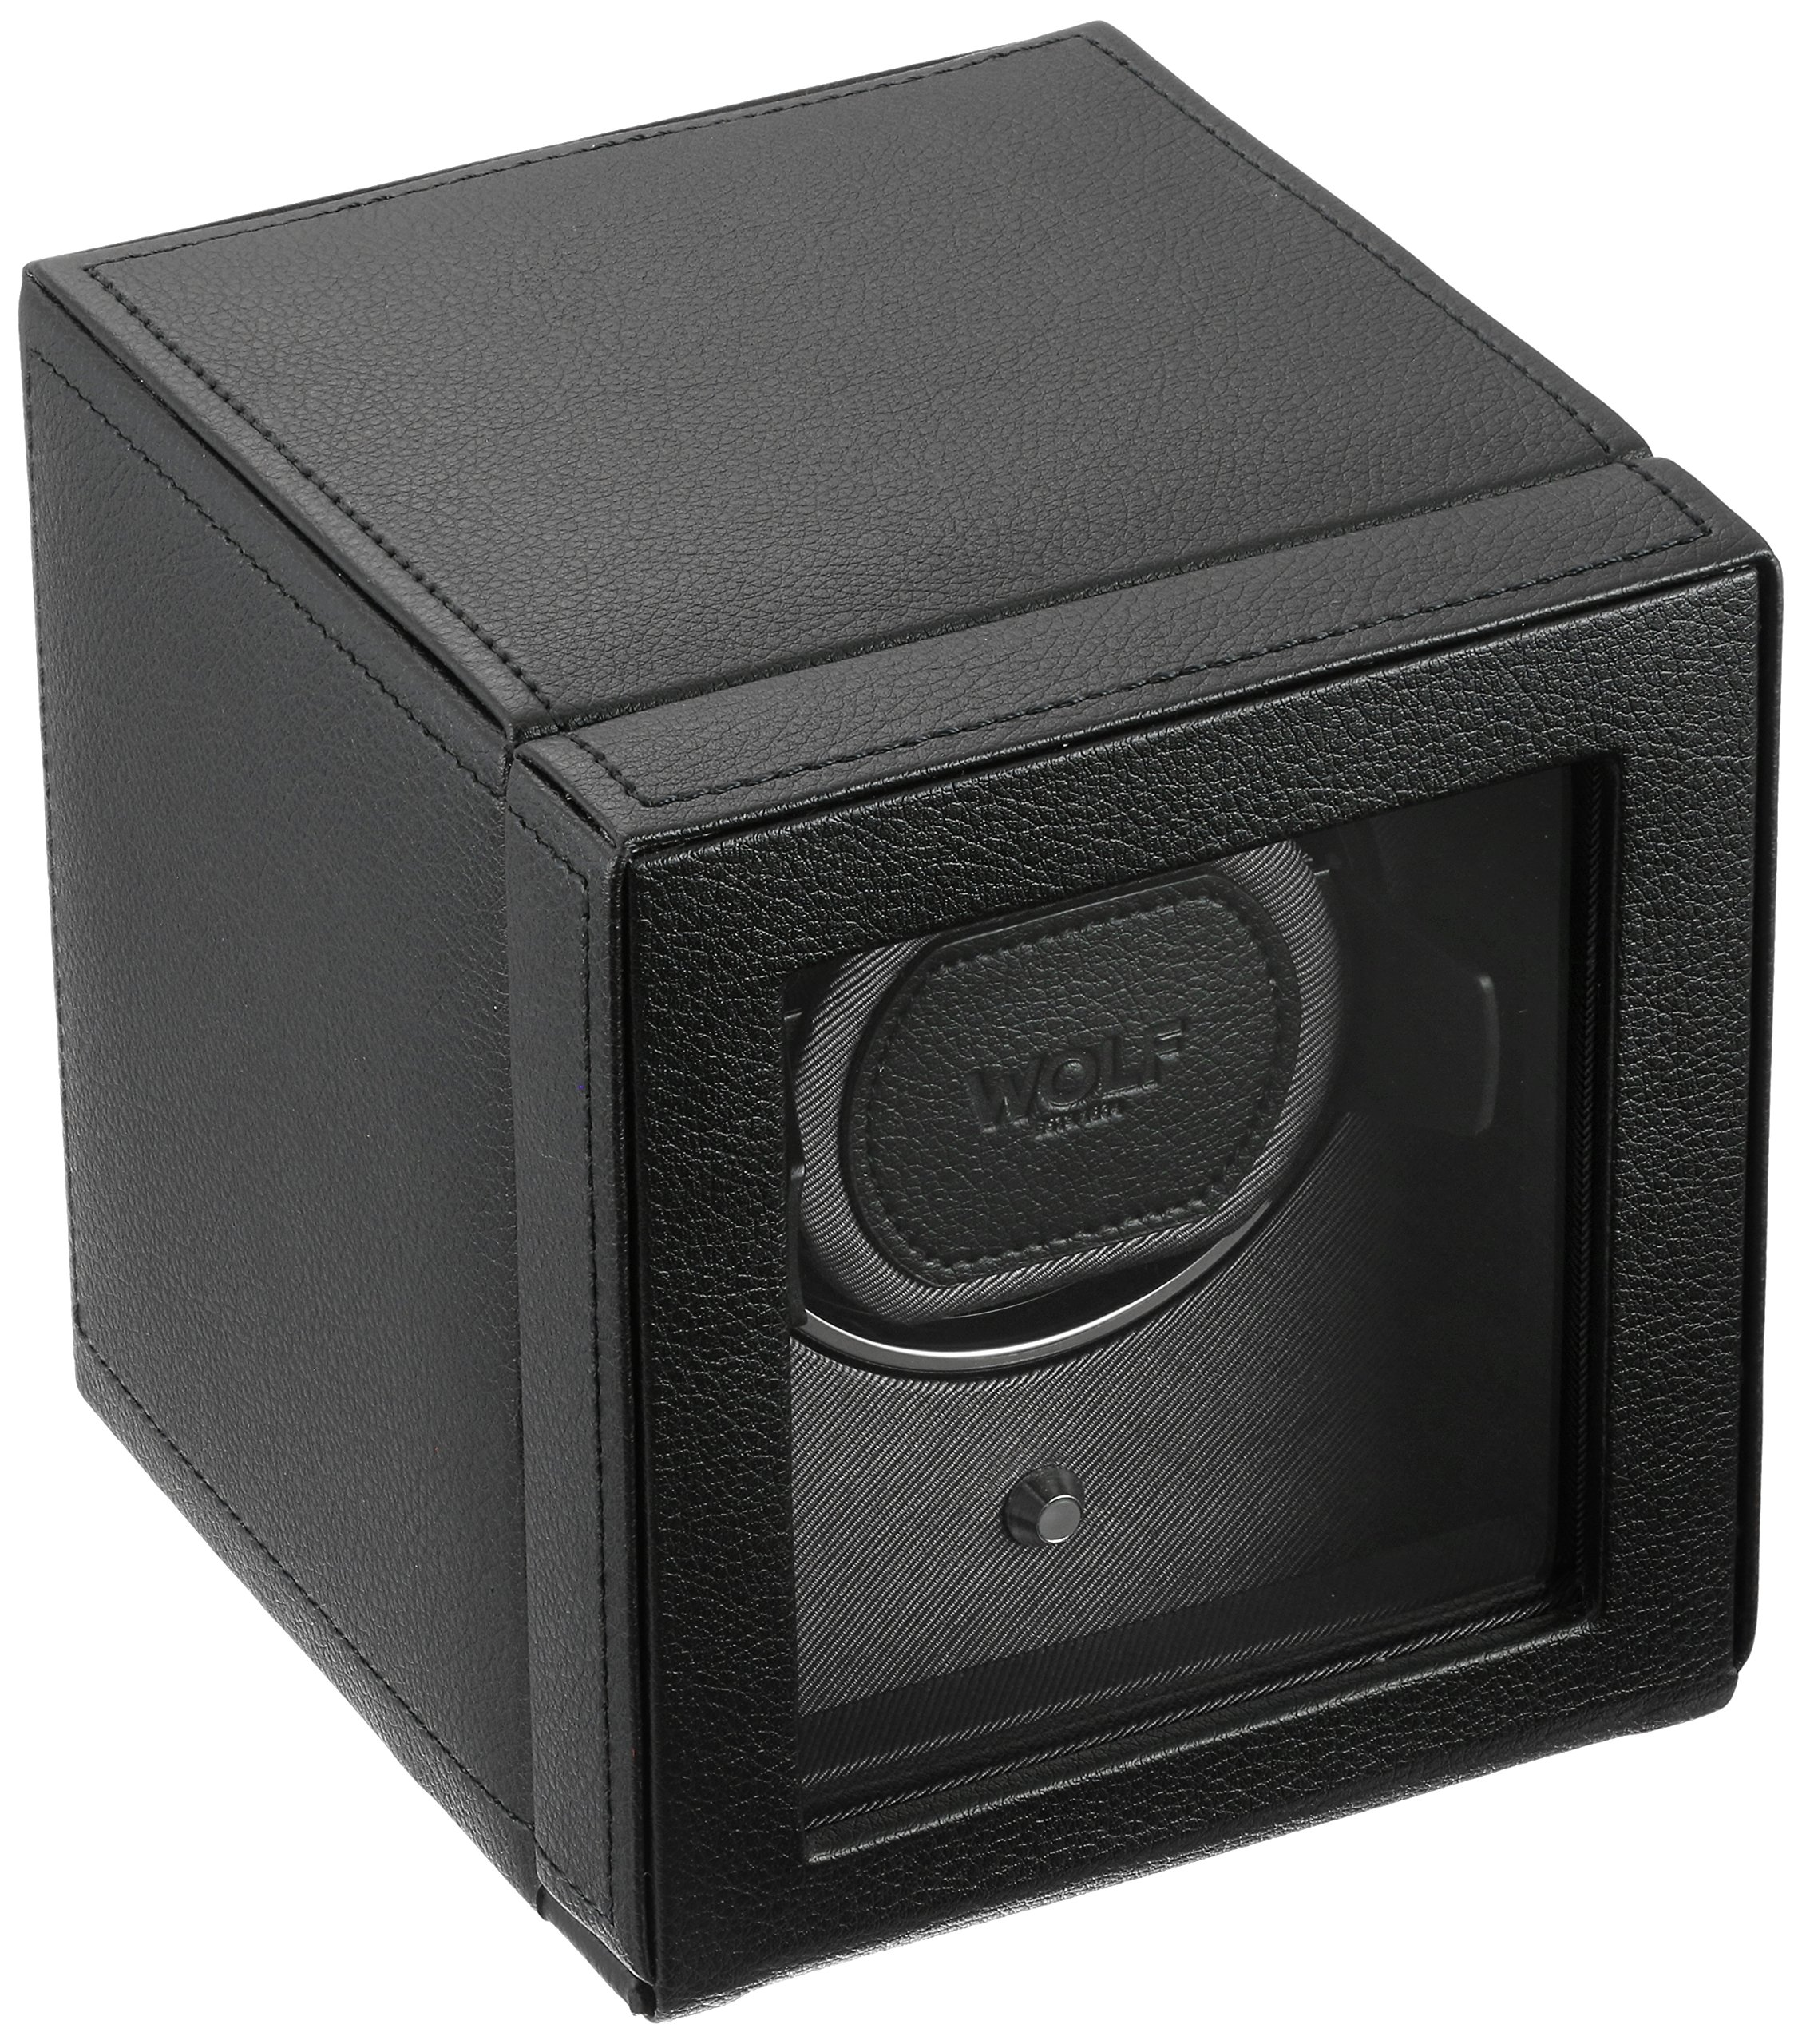 WOLF Unisex 461103 Wolf Cub Single Black Analog Display Watch Winder with Cover by WOLF